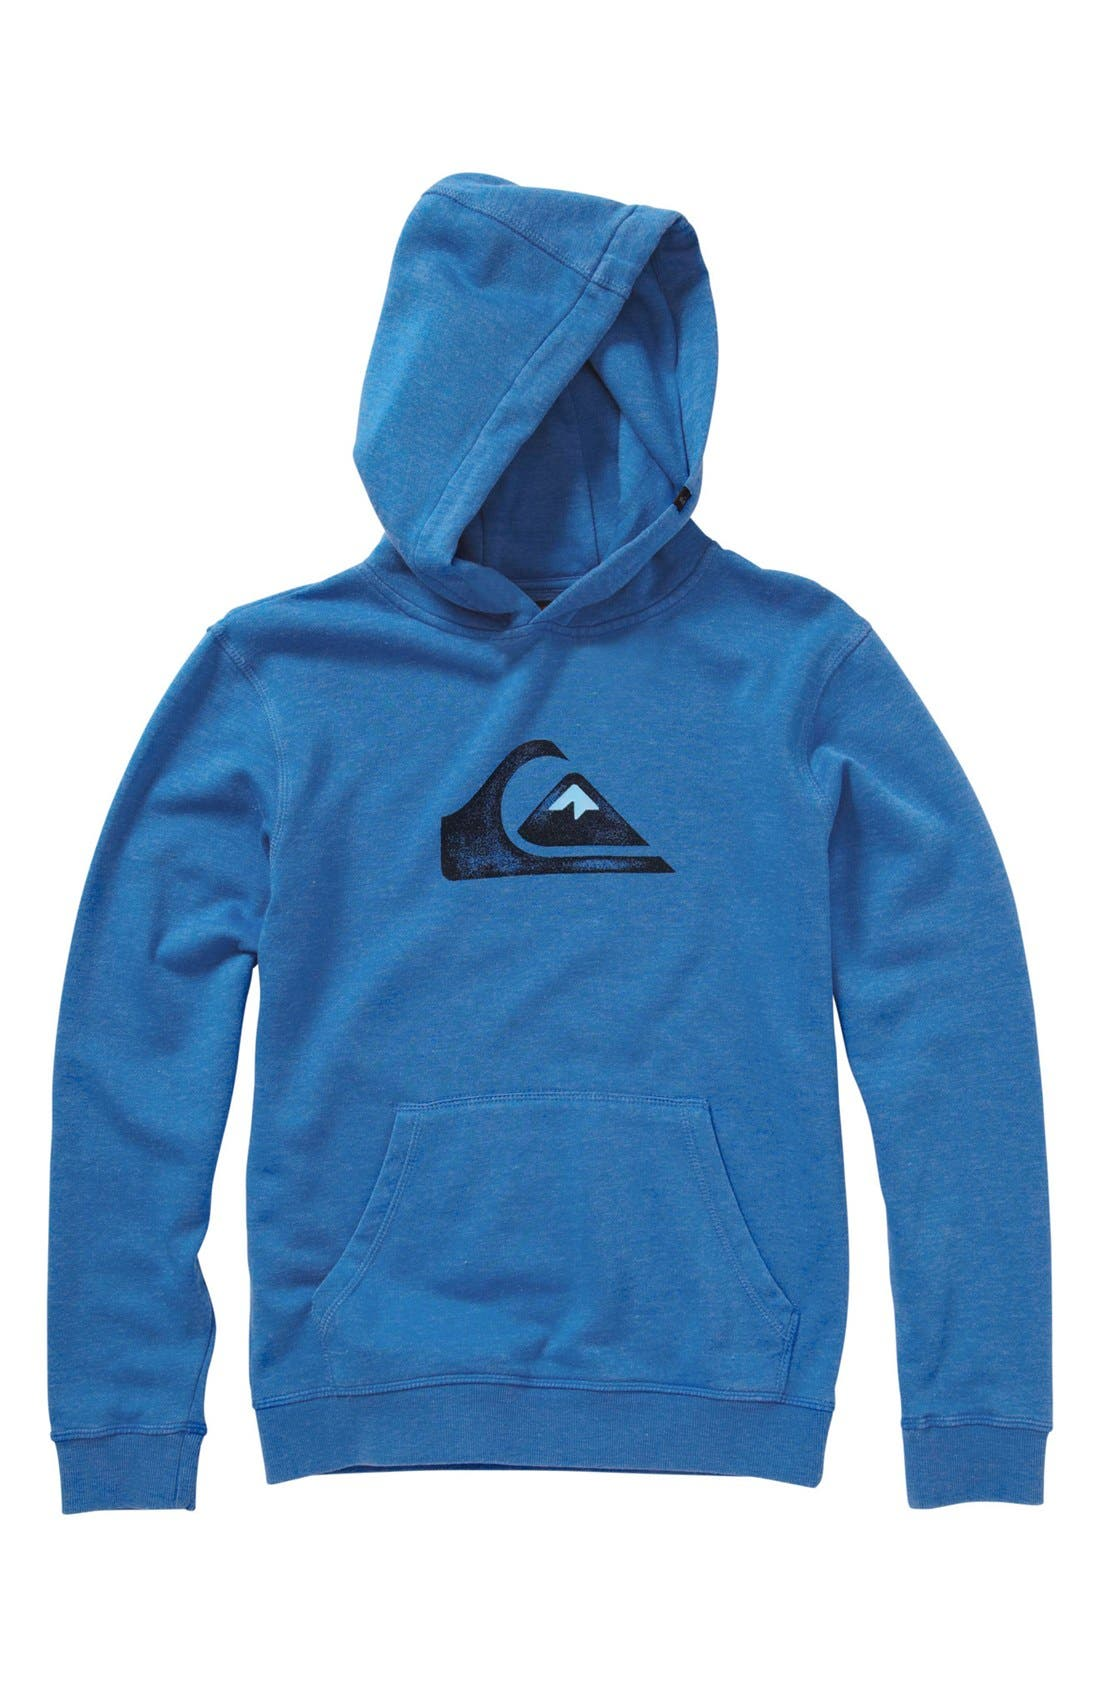 Alternate Image 1 Selected - Quiksilver 'Prescott' Pullover Hoodie (Little Boys)